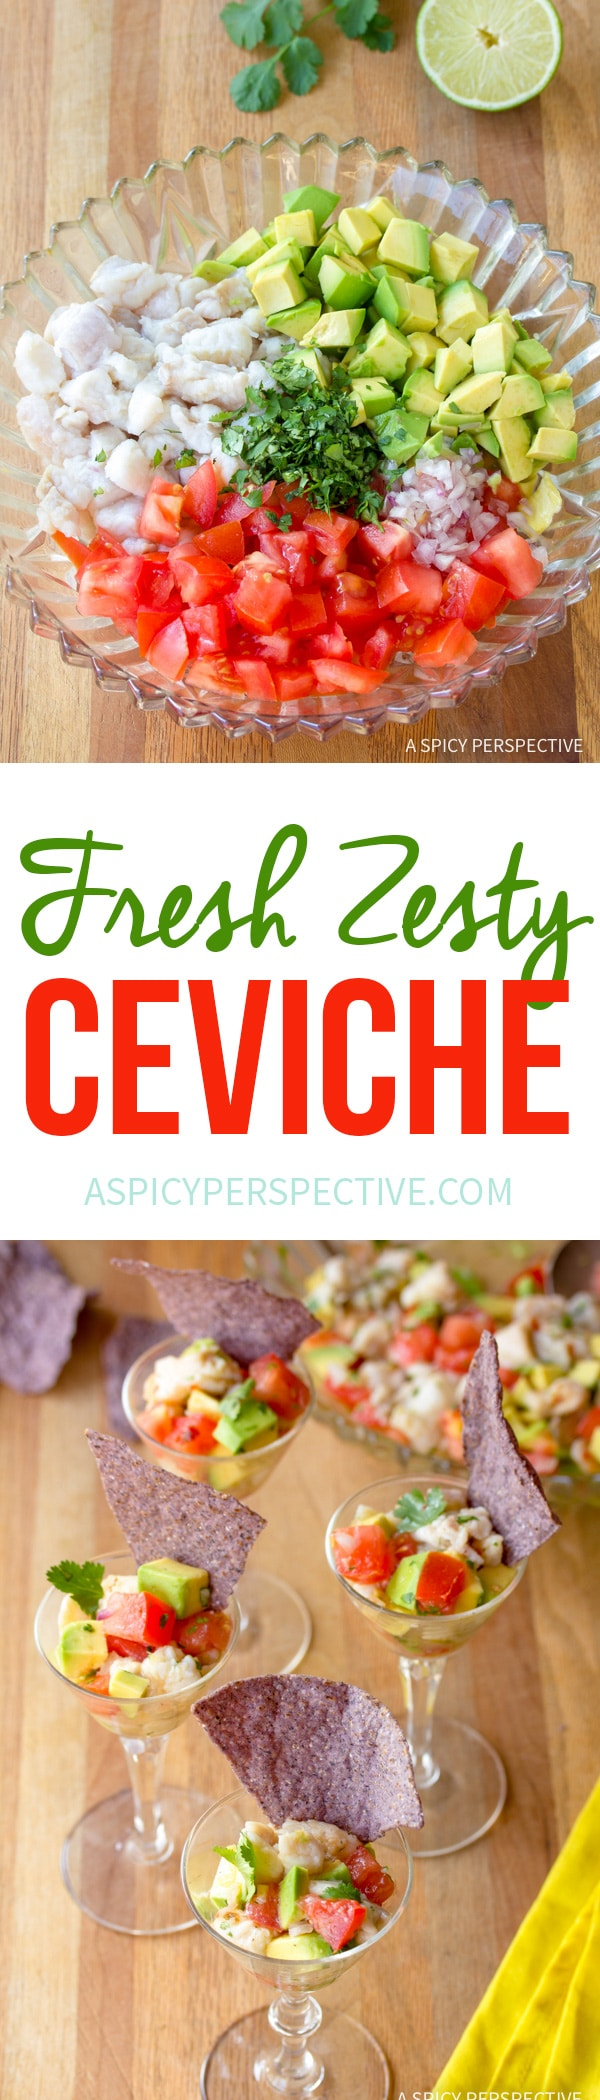 Zesty Classic Ceviche Recipe #healthy #lowcarb #paleo